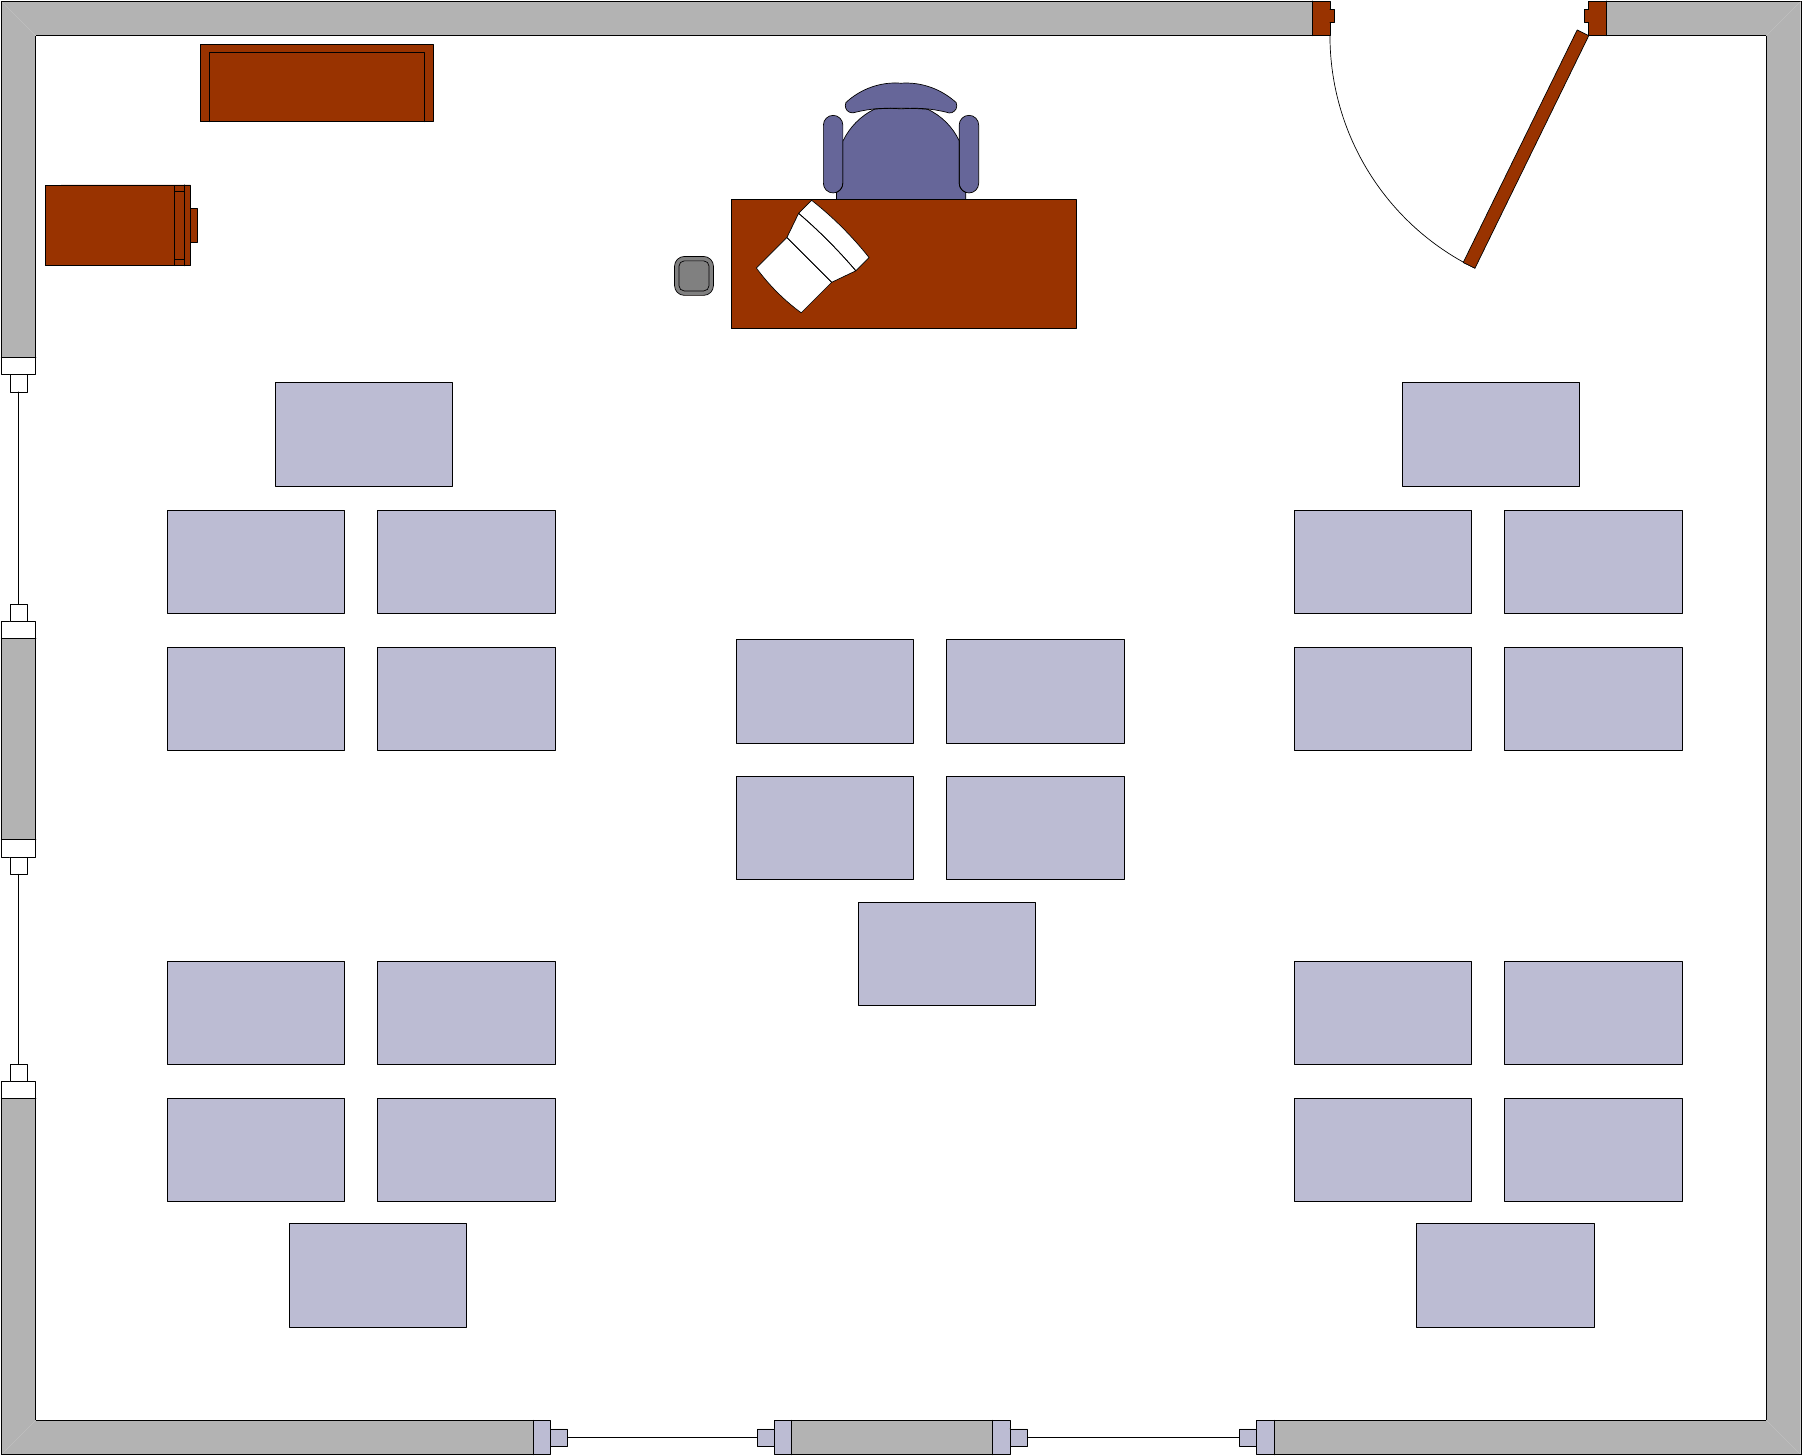 templates seating chart classroom template classroom seating chart – Seating Chart Template for Classroom